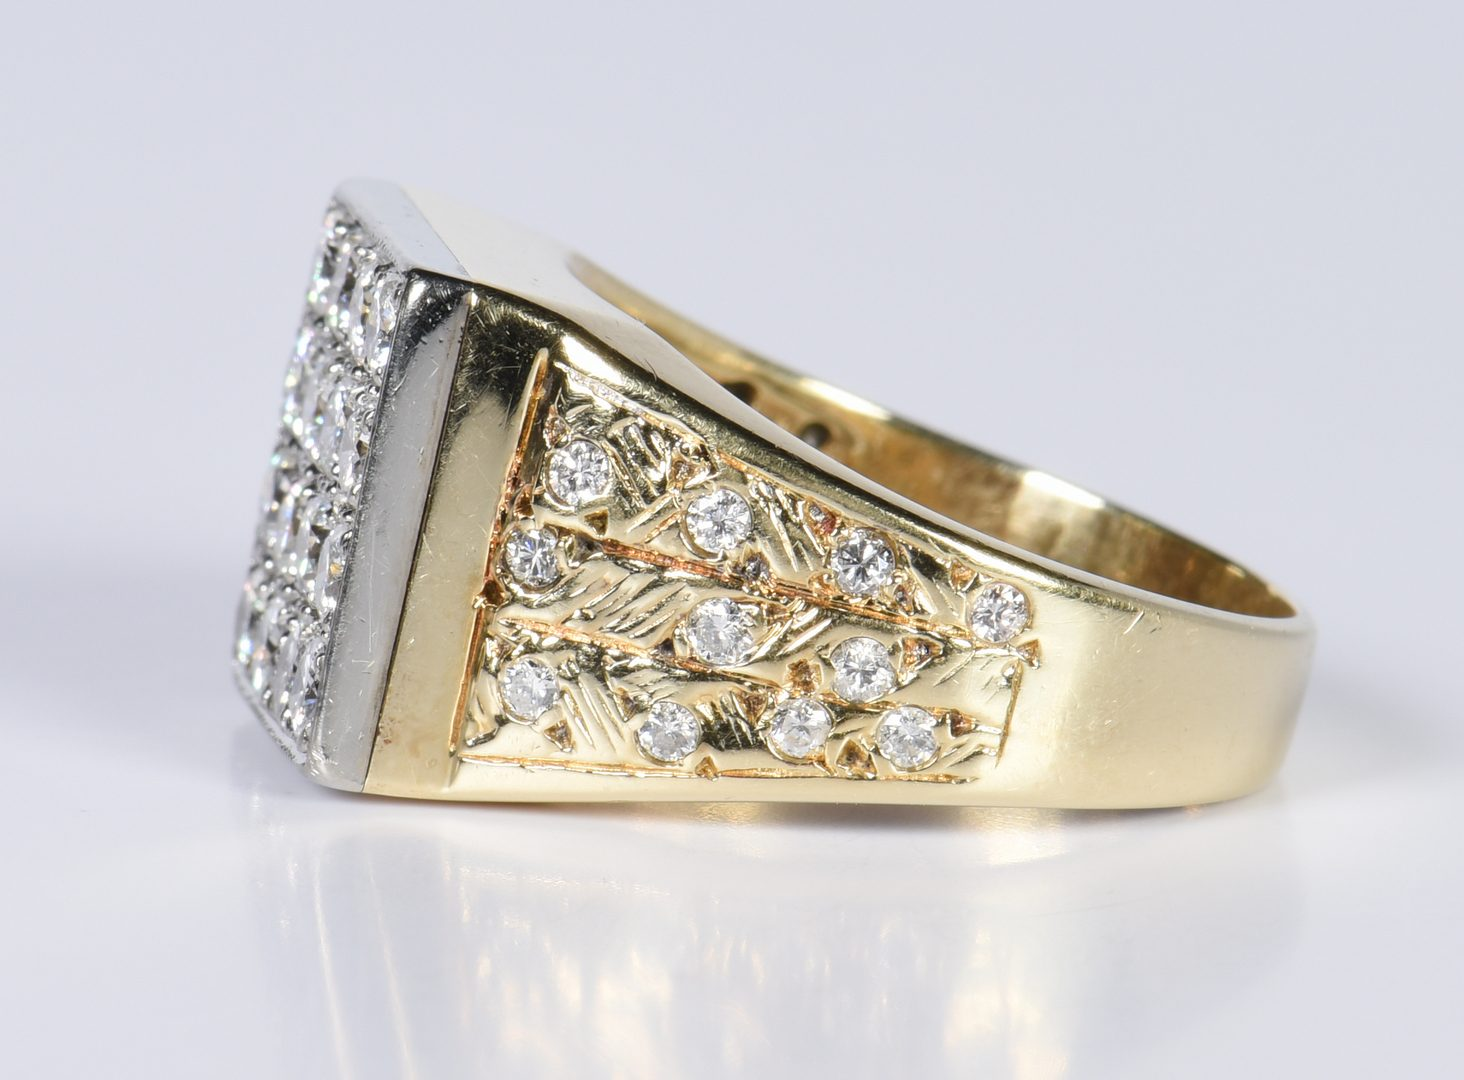 Lot 786: Gents 14K Diamond Fashion Ring